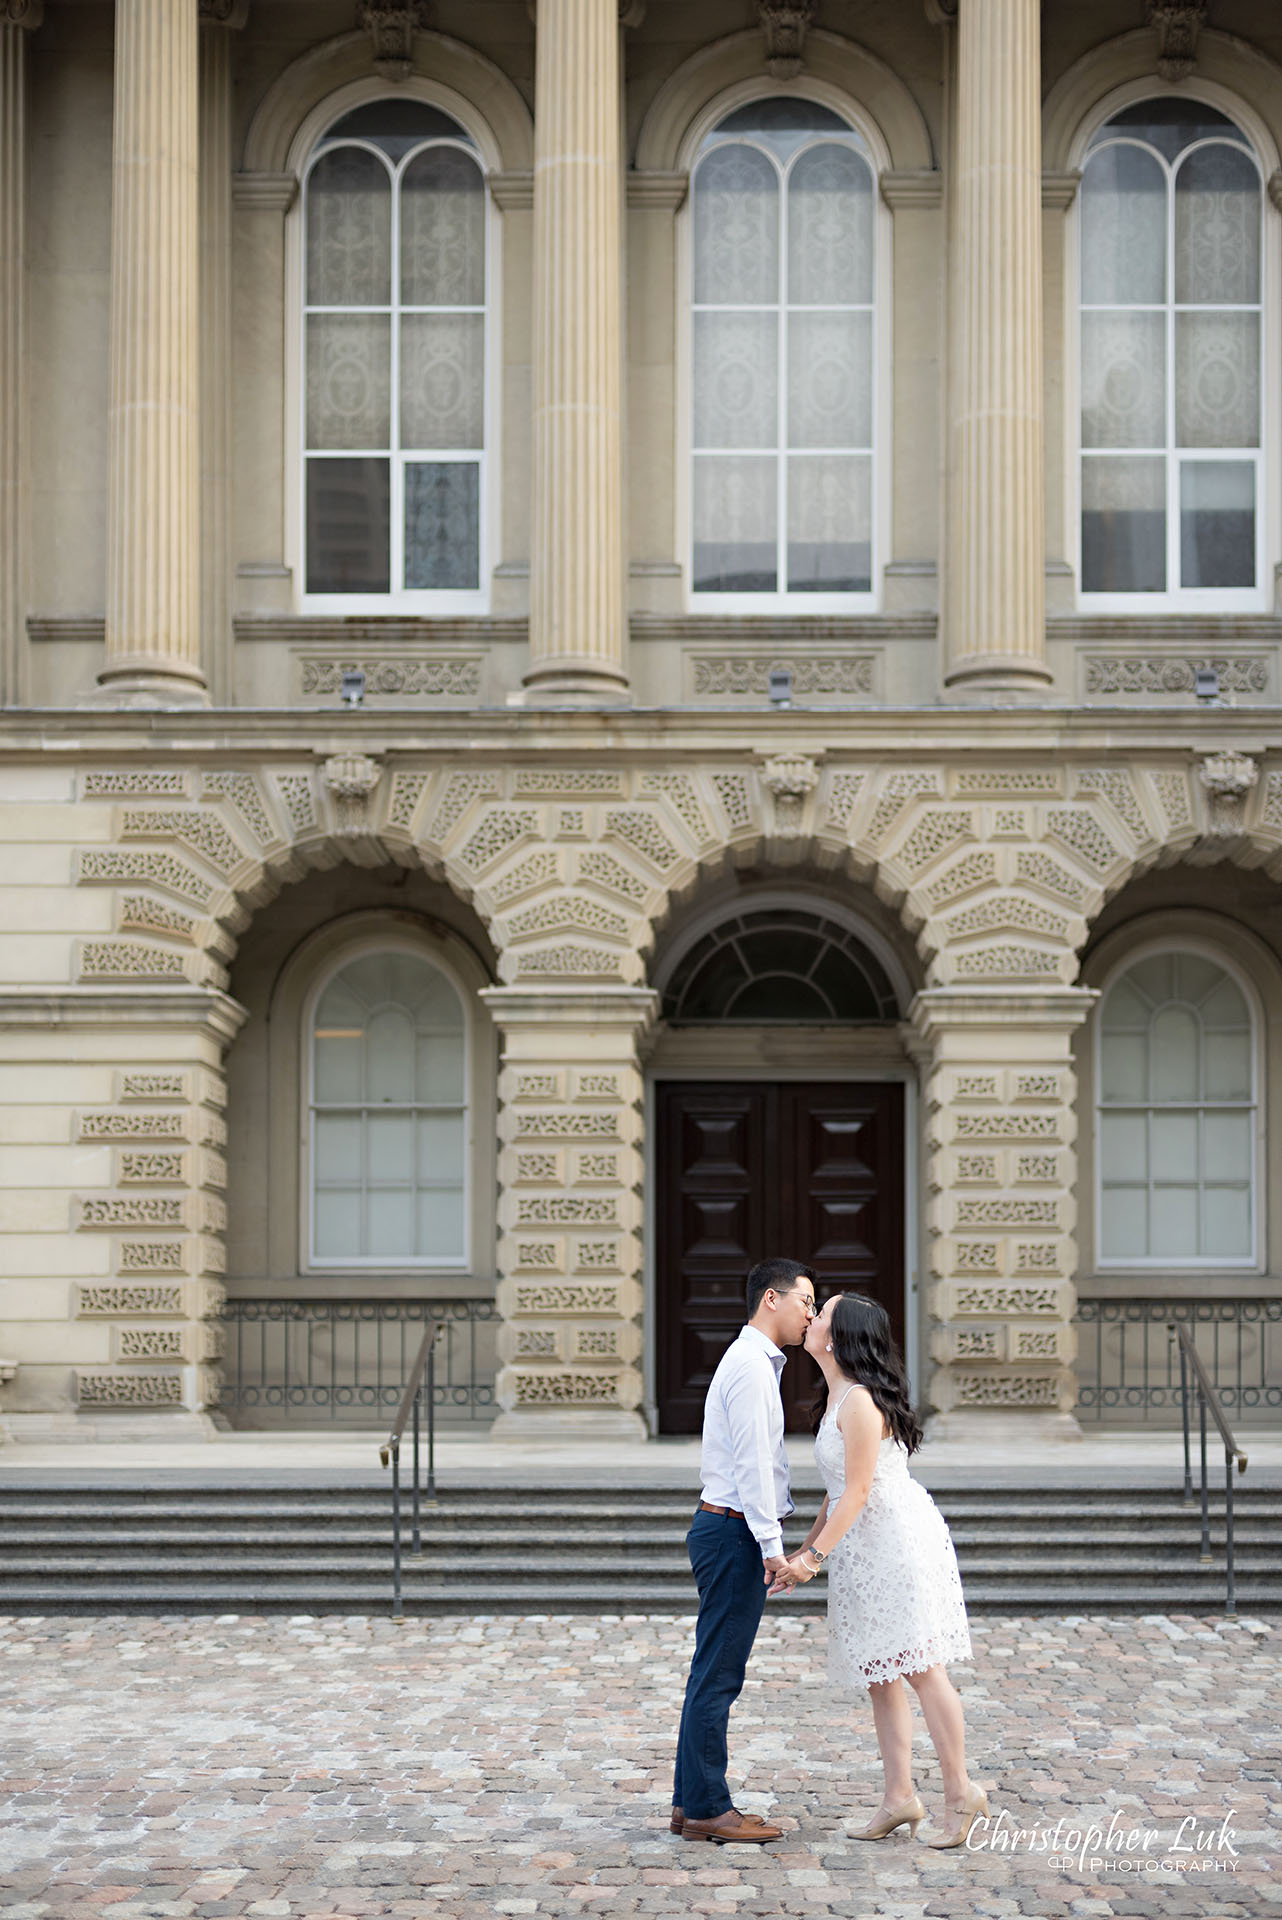 Christopher Luk Wedding Photographer Osgoode Hall Toronto Bride Groom Main Historic Building Front Cobblestone Holding Hands Walking Together Kiss Portrait Christopher Luk Wedding Photographer Osgoode Hall Toronto Bride Groom Main Historic Building Front Cobblestone Holding Hands Walking Together Looking at Each Other Portrait Natural Candid Photojournalistic